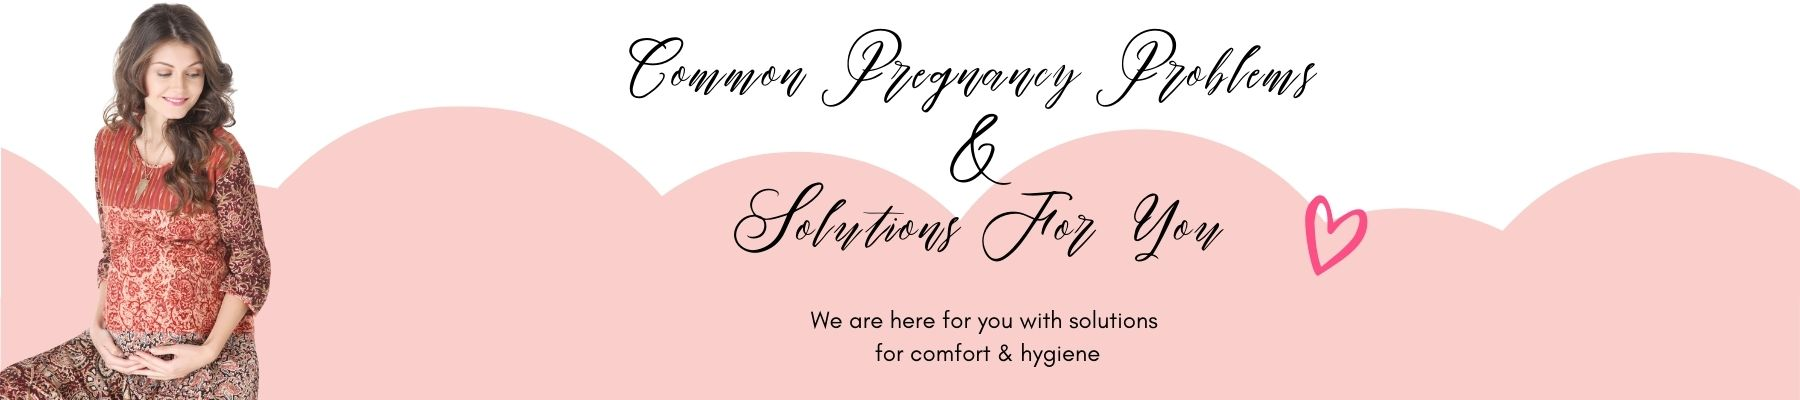 Common Pregnancy Problems & Solutions